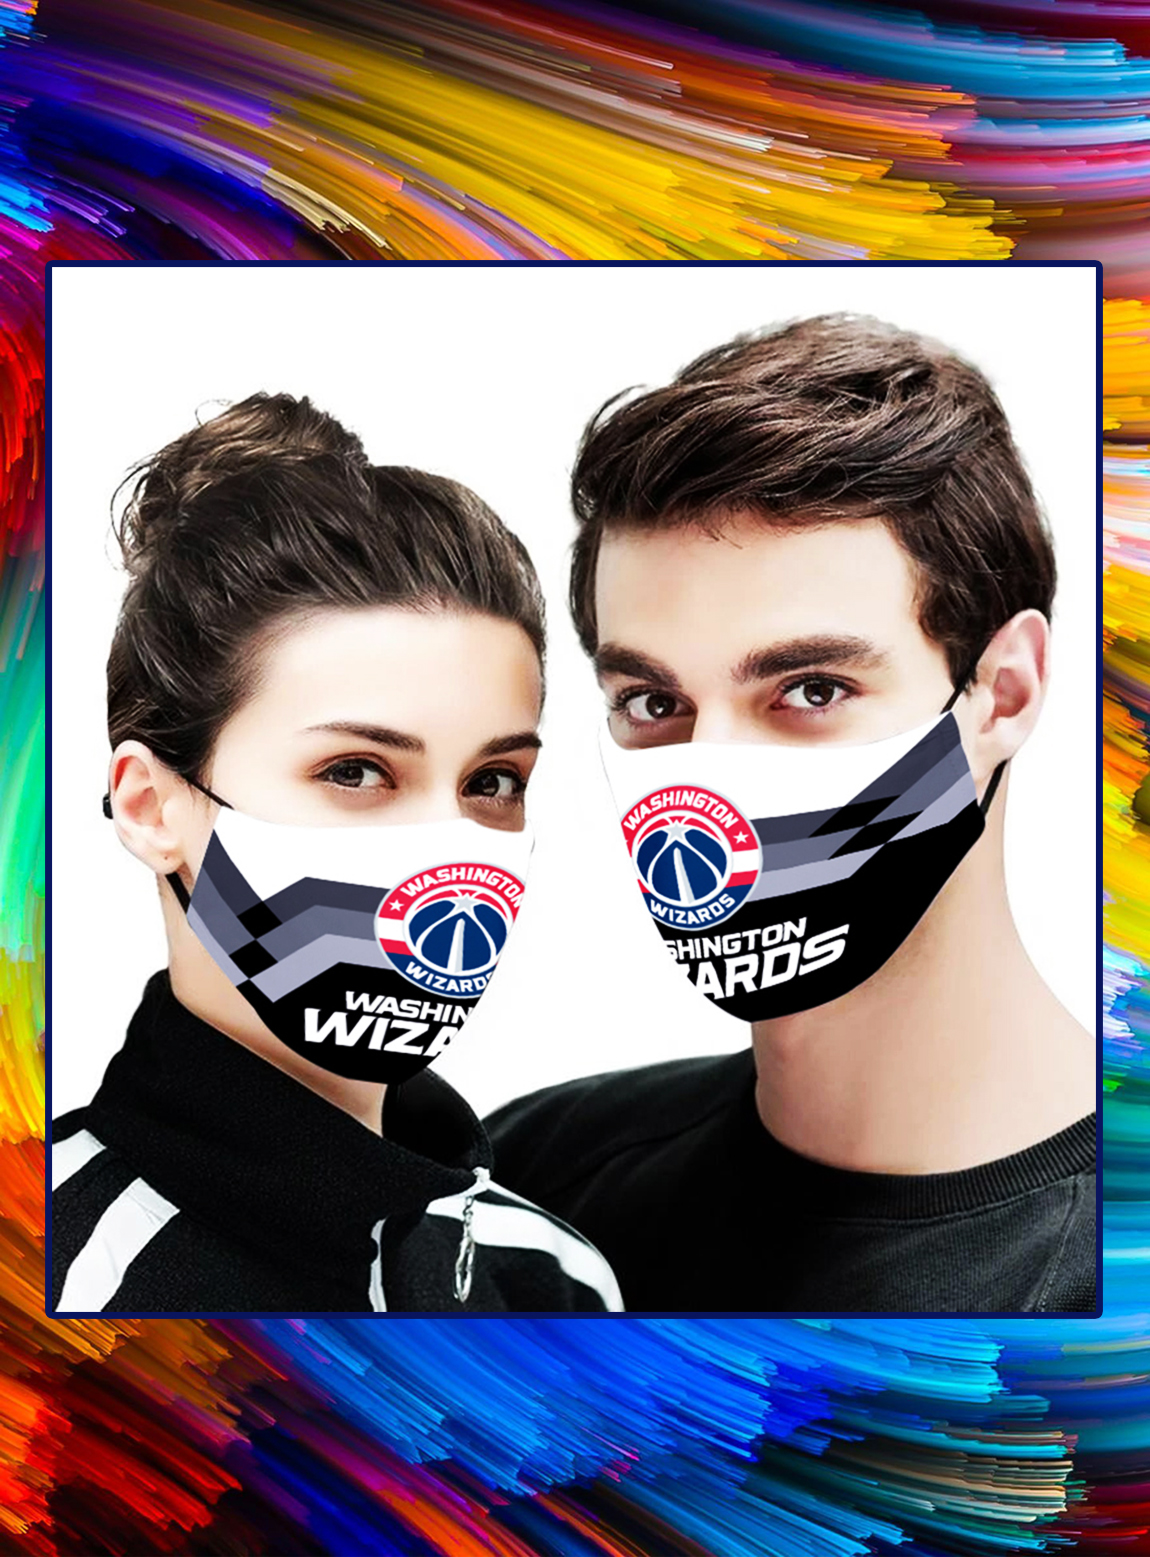 Washington Wizards NBA face mask - Picture 1